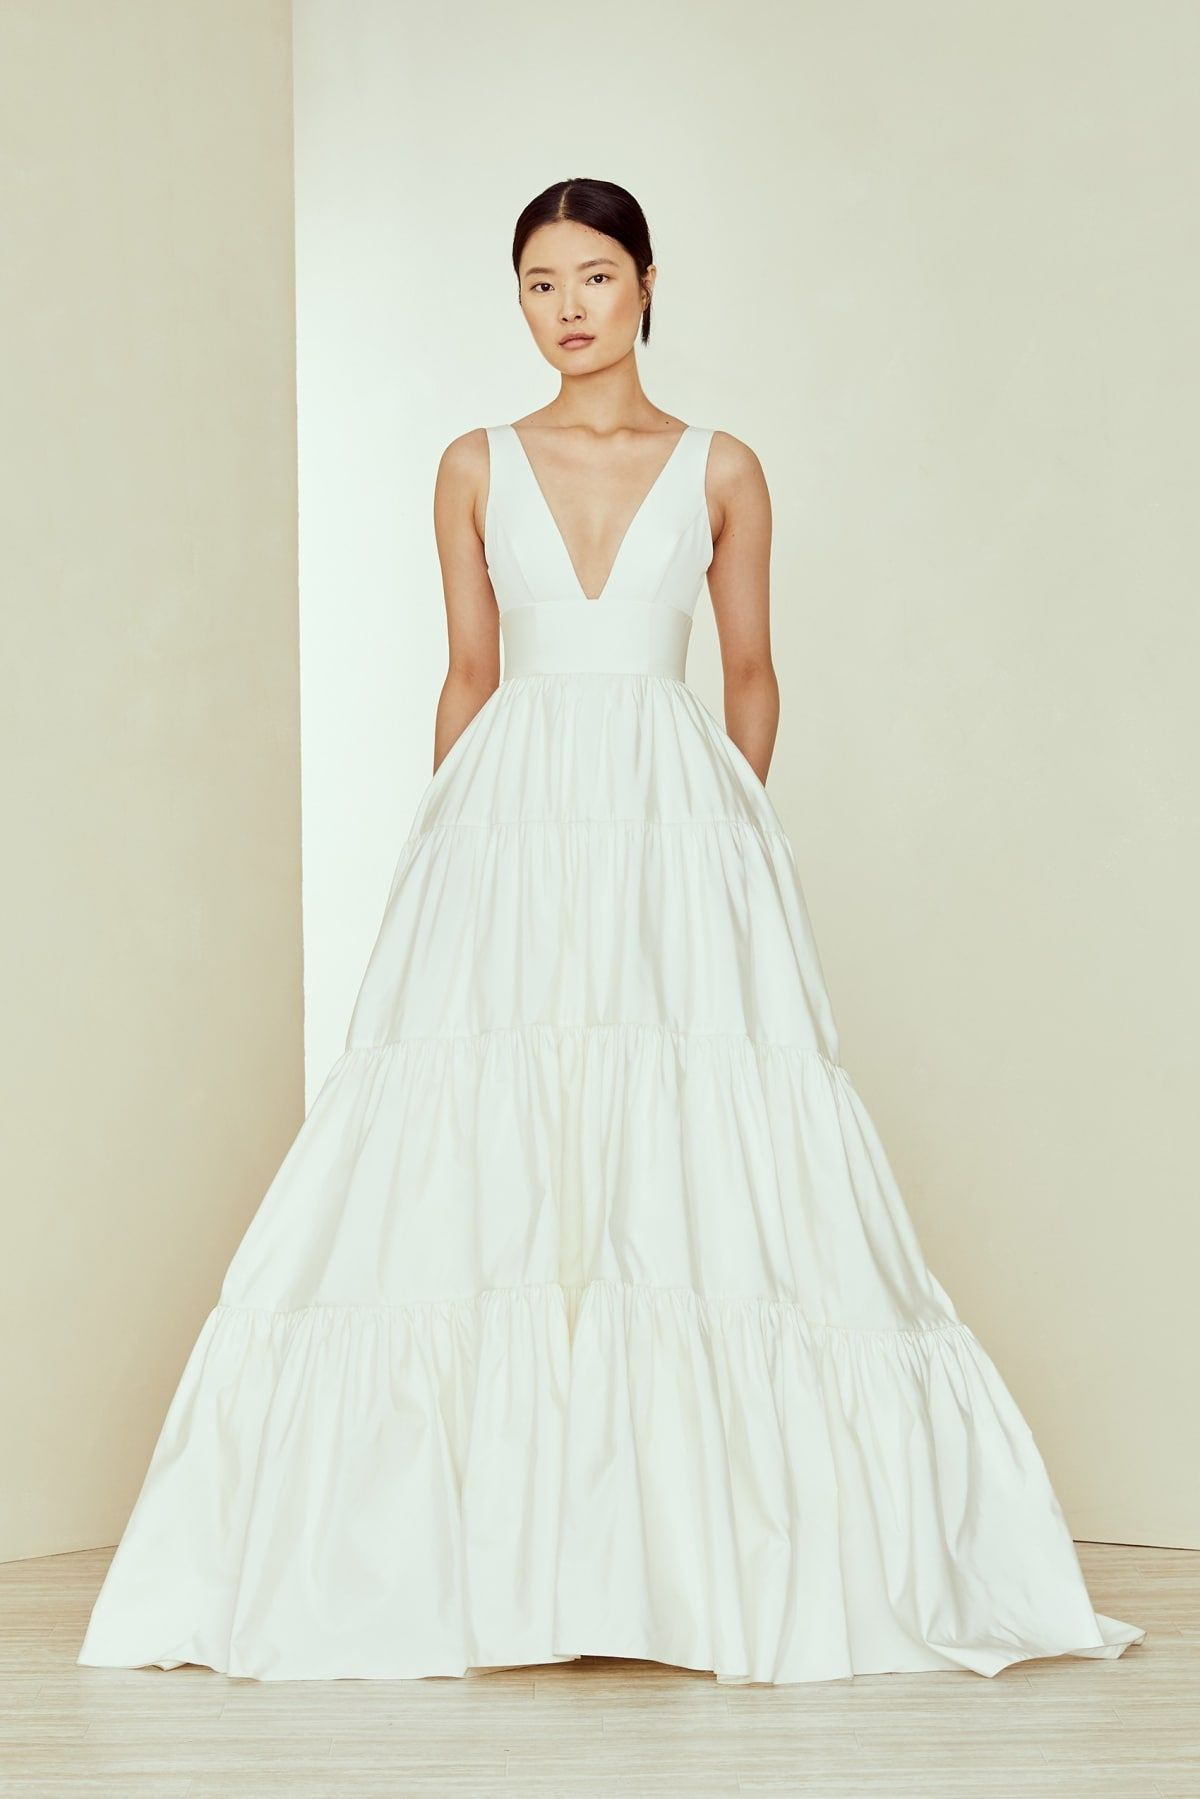 Amsale Bridal Collection Fall 2020 Dress For The Wedding In 2020 Amsale Bridesmaid Dresses Amsale Wedding Dress Amsale Bridal Gowns